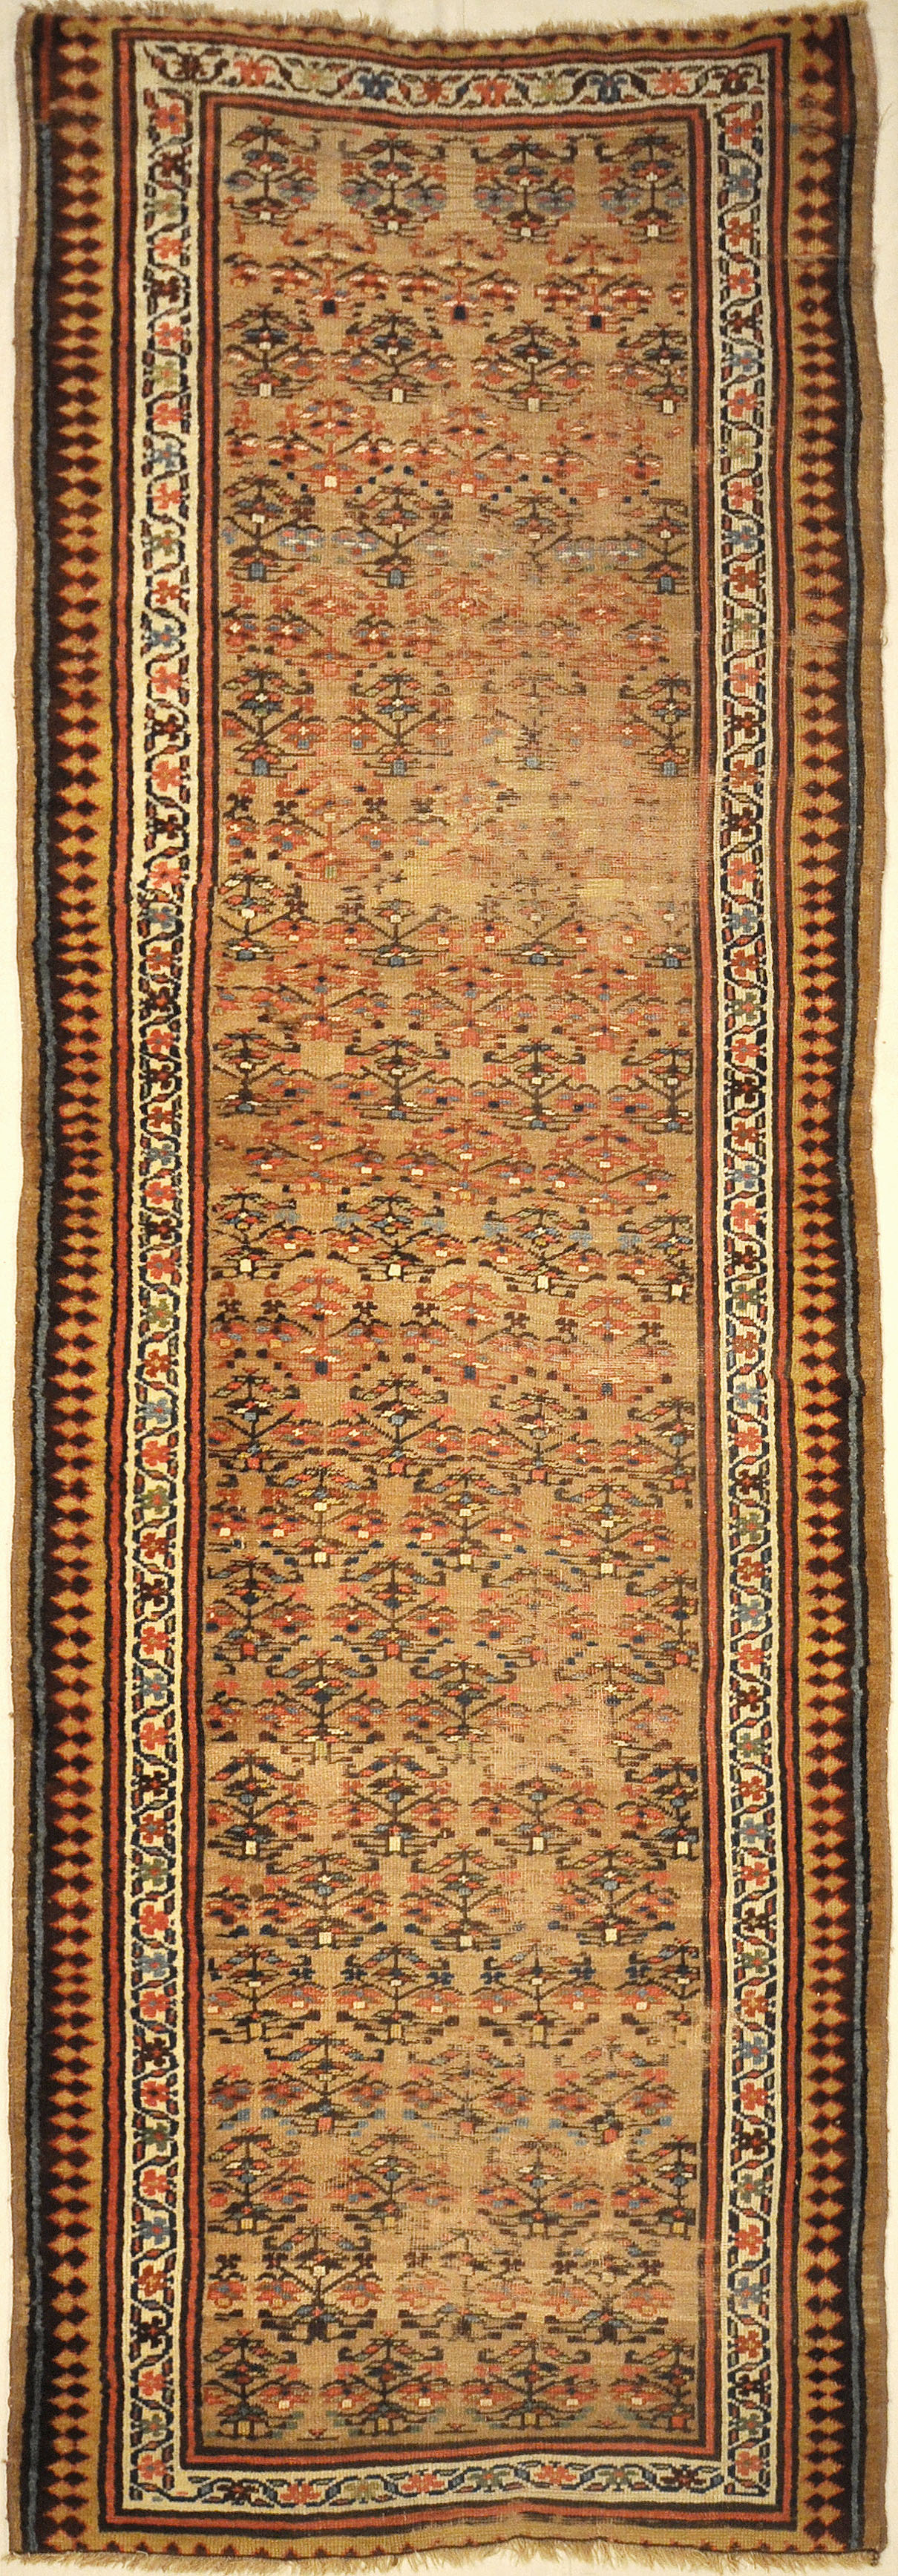 Antique Sarab Rug. A piece of genuine antique authentic woven carpet art sold by Santa Barbara Design Center Rugs and More.